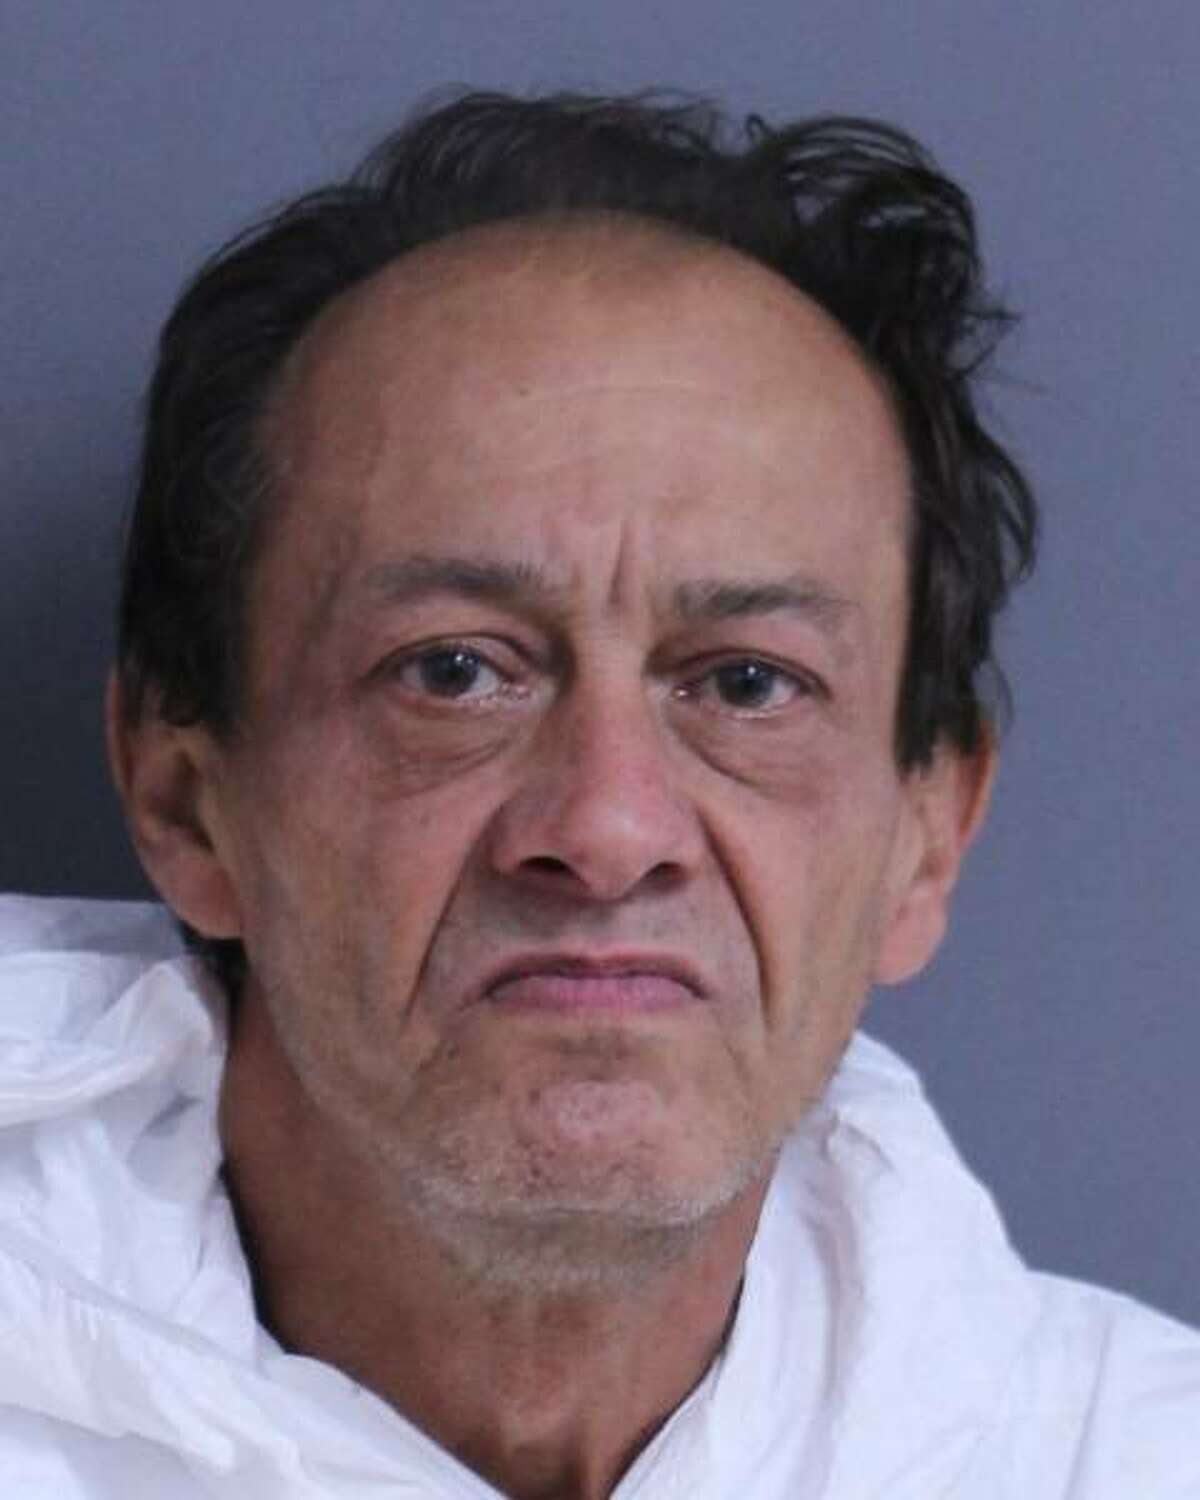 Raymond George was charged with manslaughter after ramming his car into a man sitting outside a motel in Cobleskill June 15, 2021, killing the man and his two dogs.